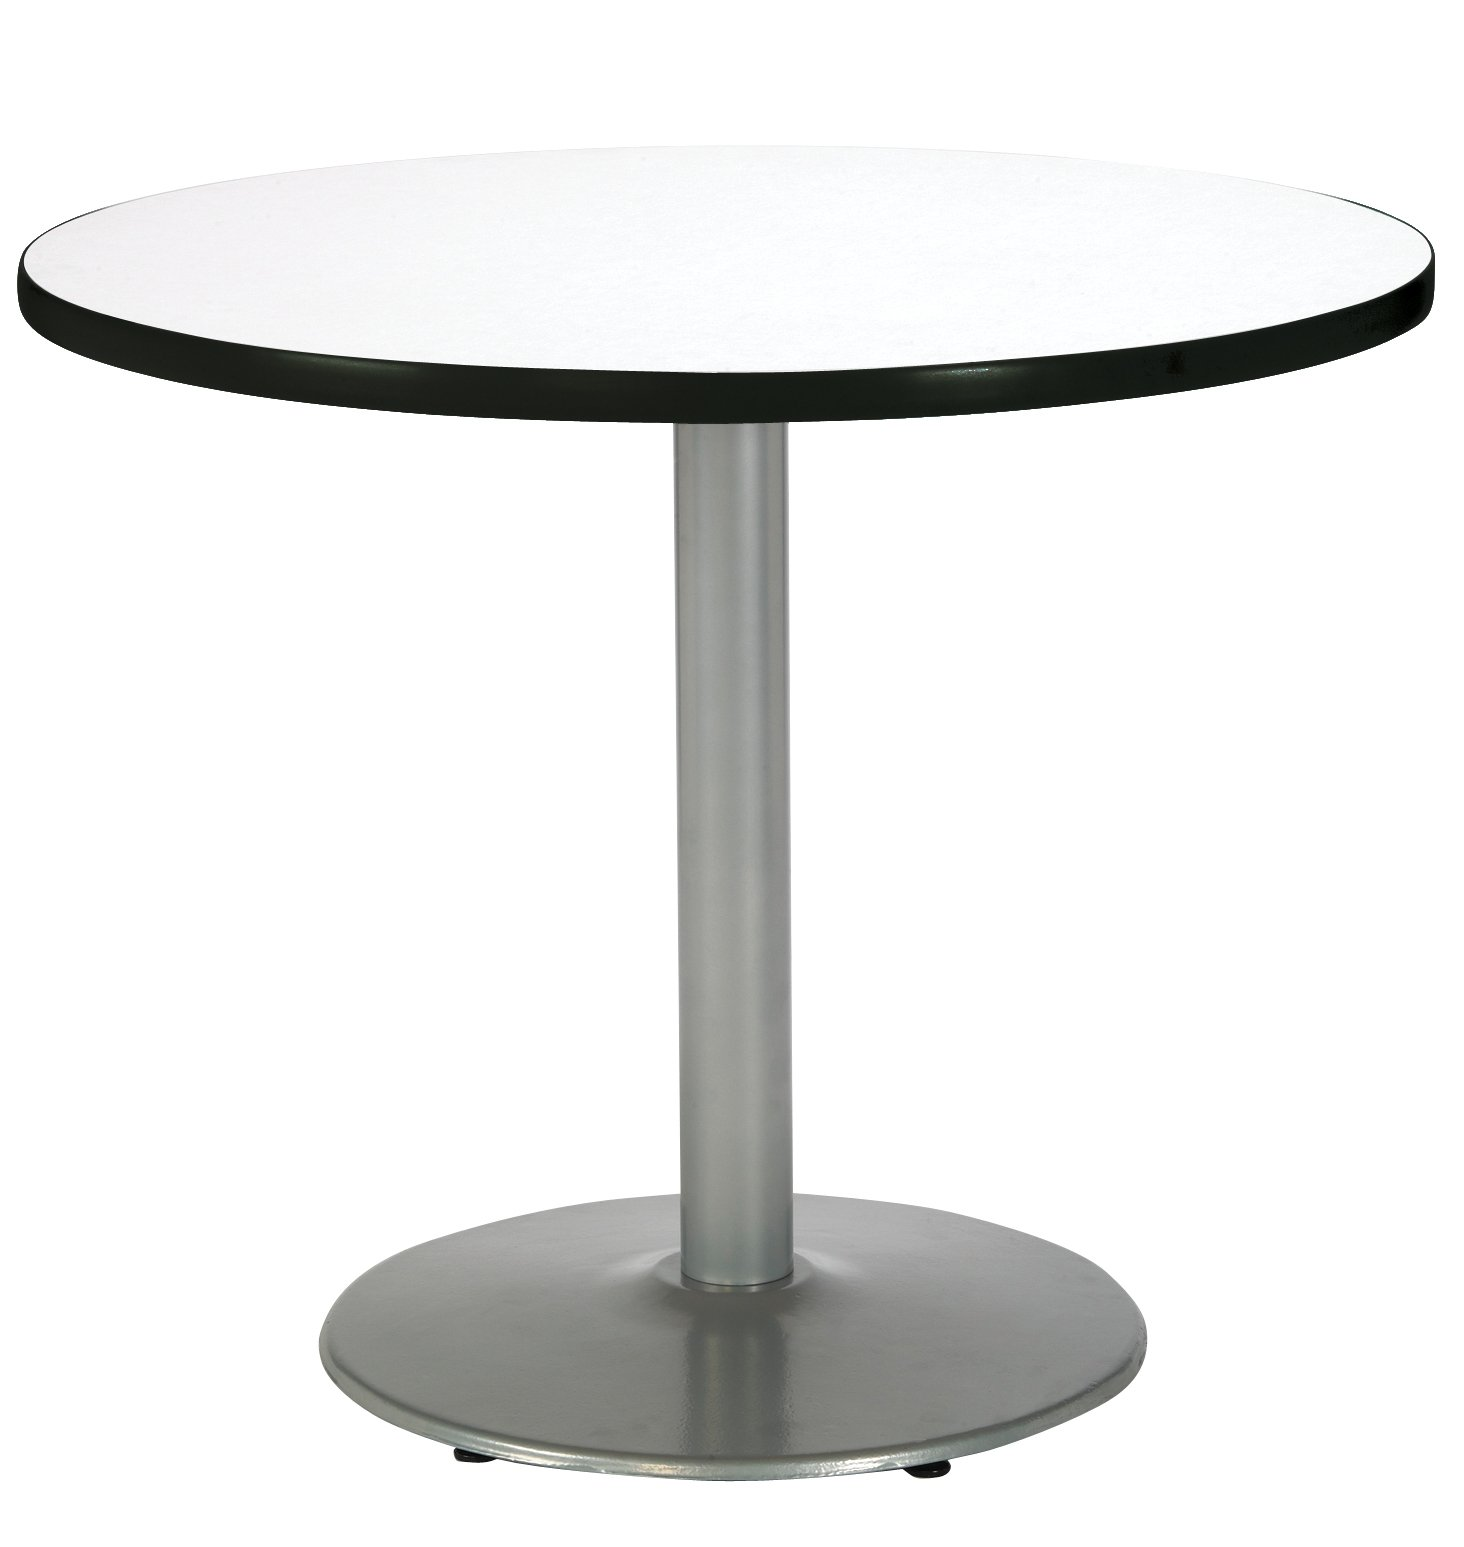 KFI Seating Round Pedestal Table with Round Silver Base, Commercial Grade, 36-Inch, Crisp Linen Laminate, Made in the USA